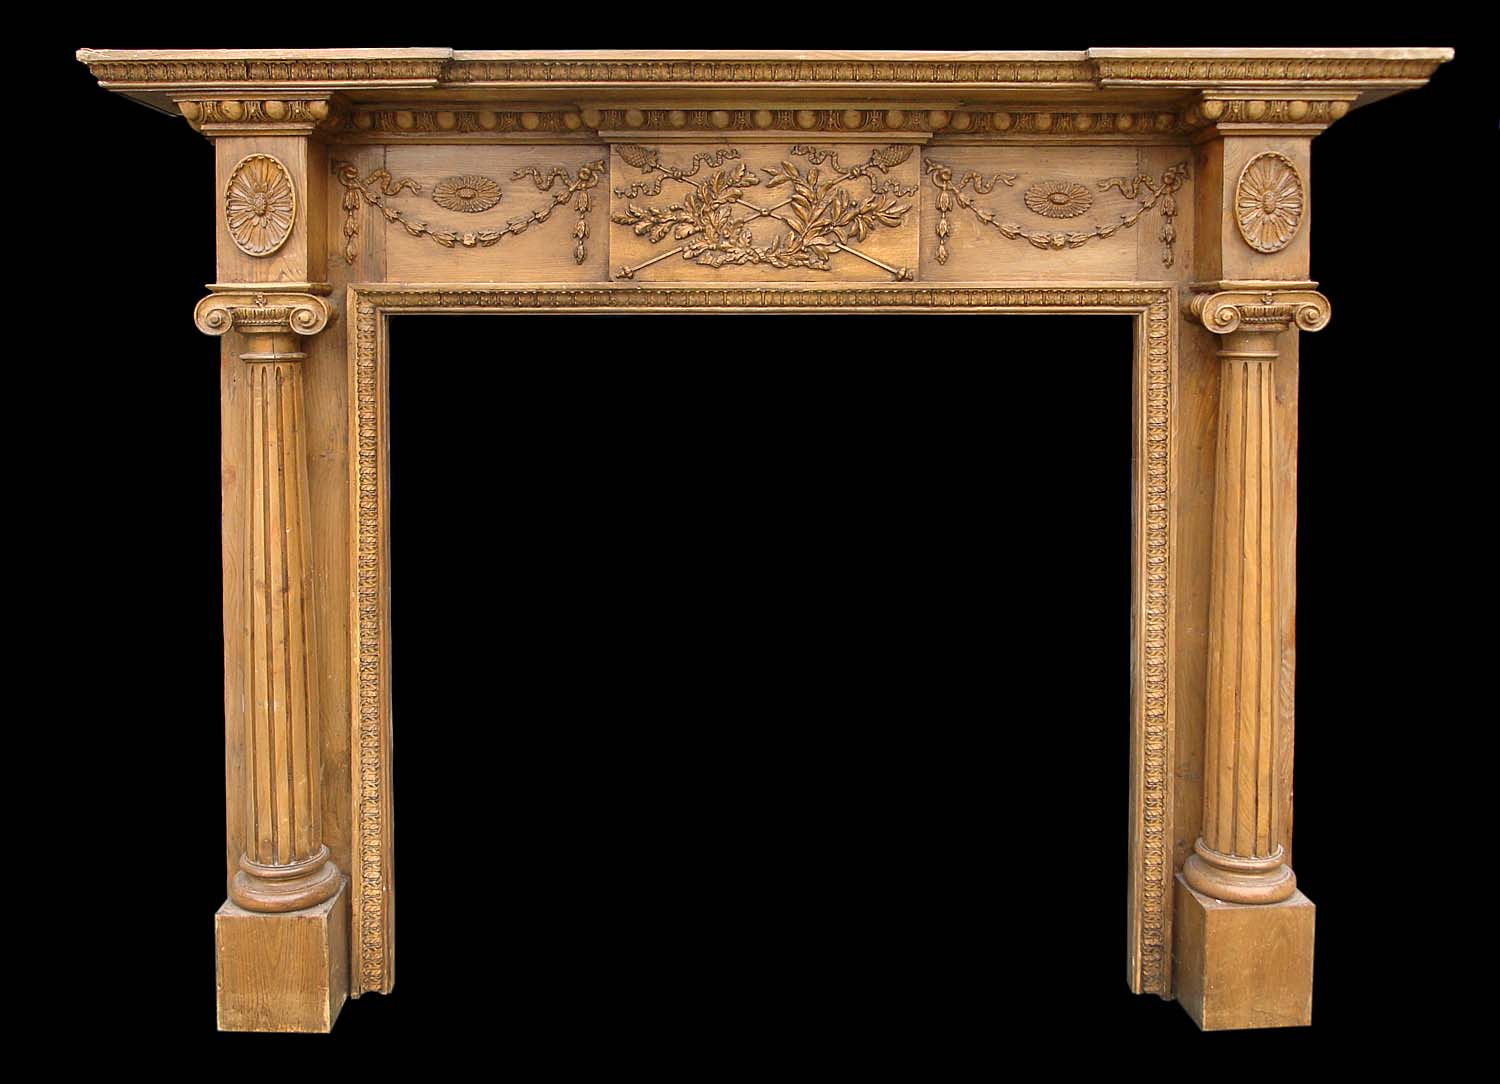 A mid 20th century Georgian style pine fireplace surround